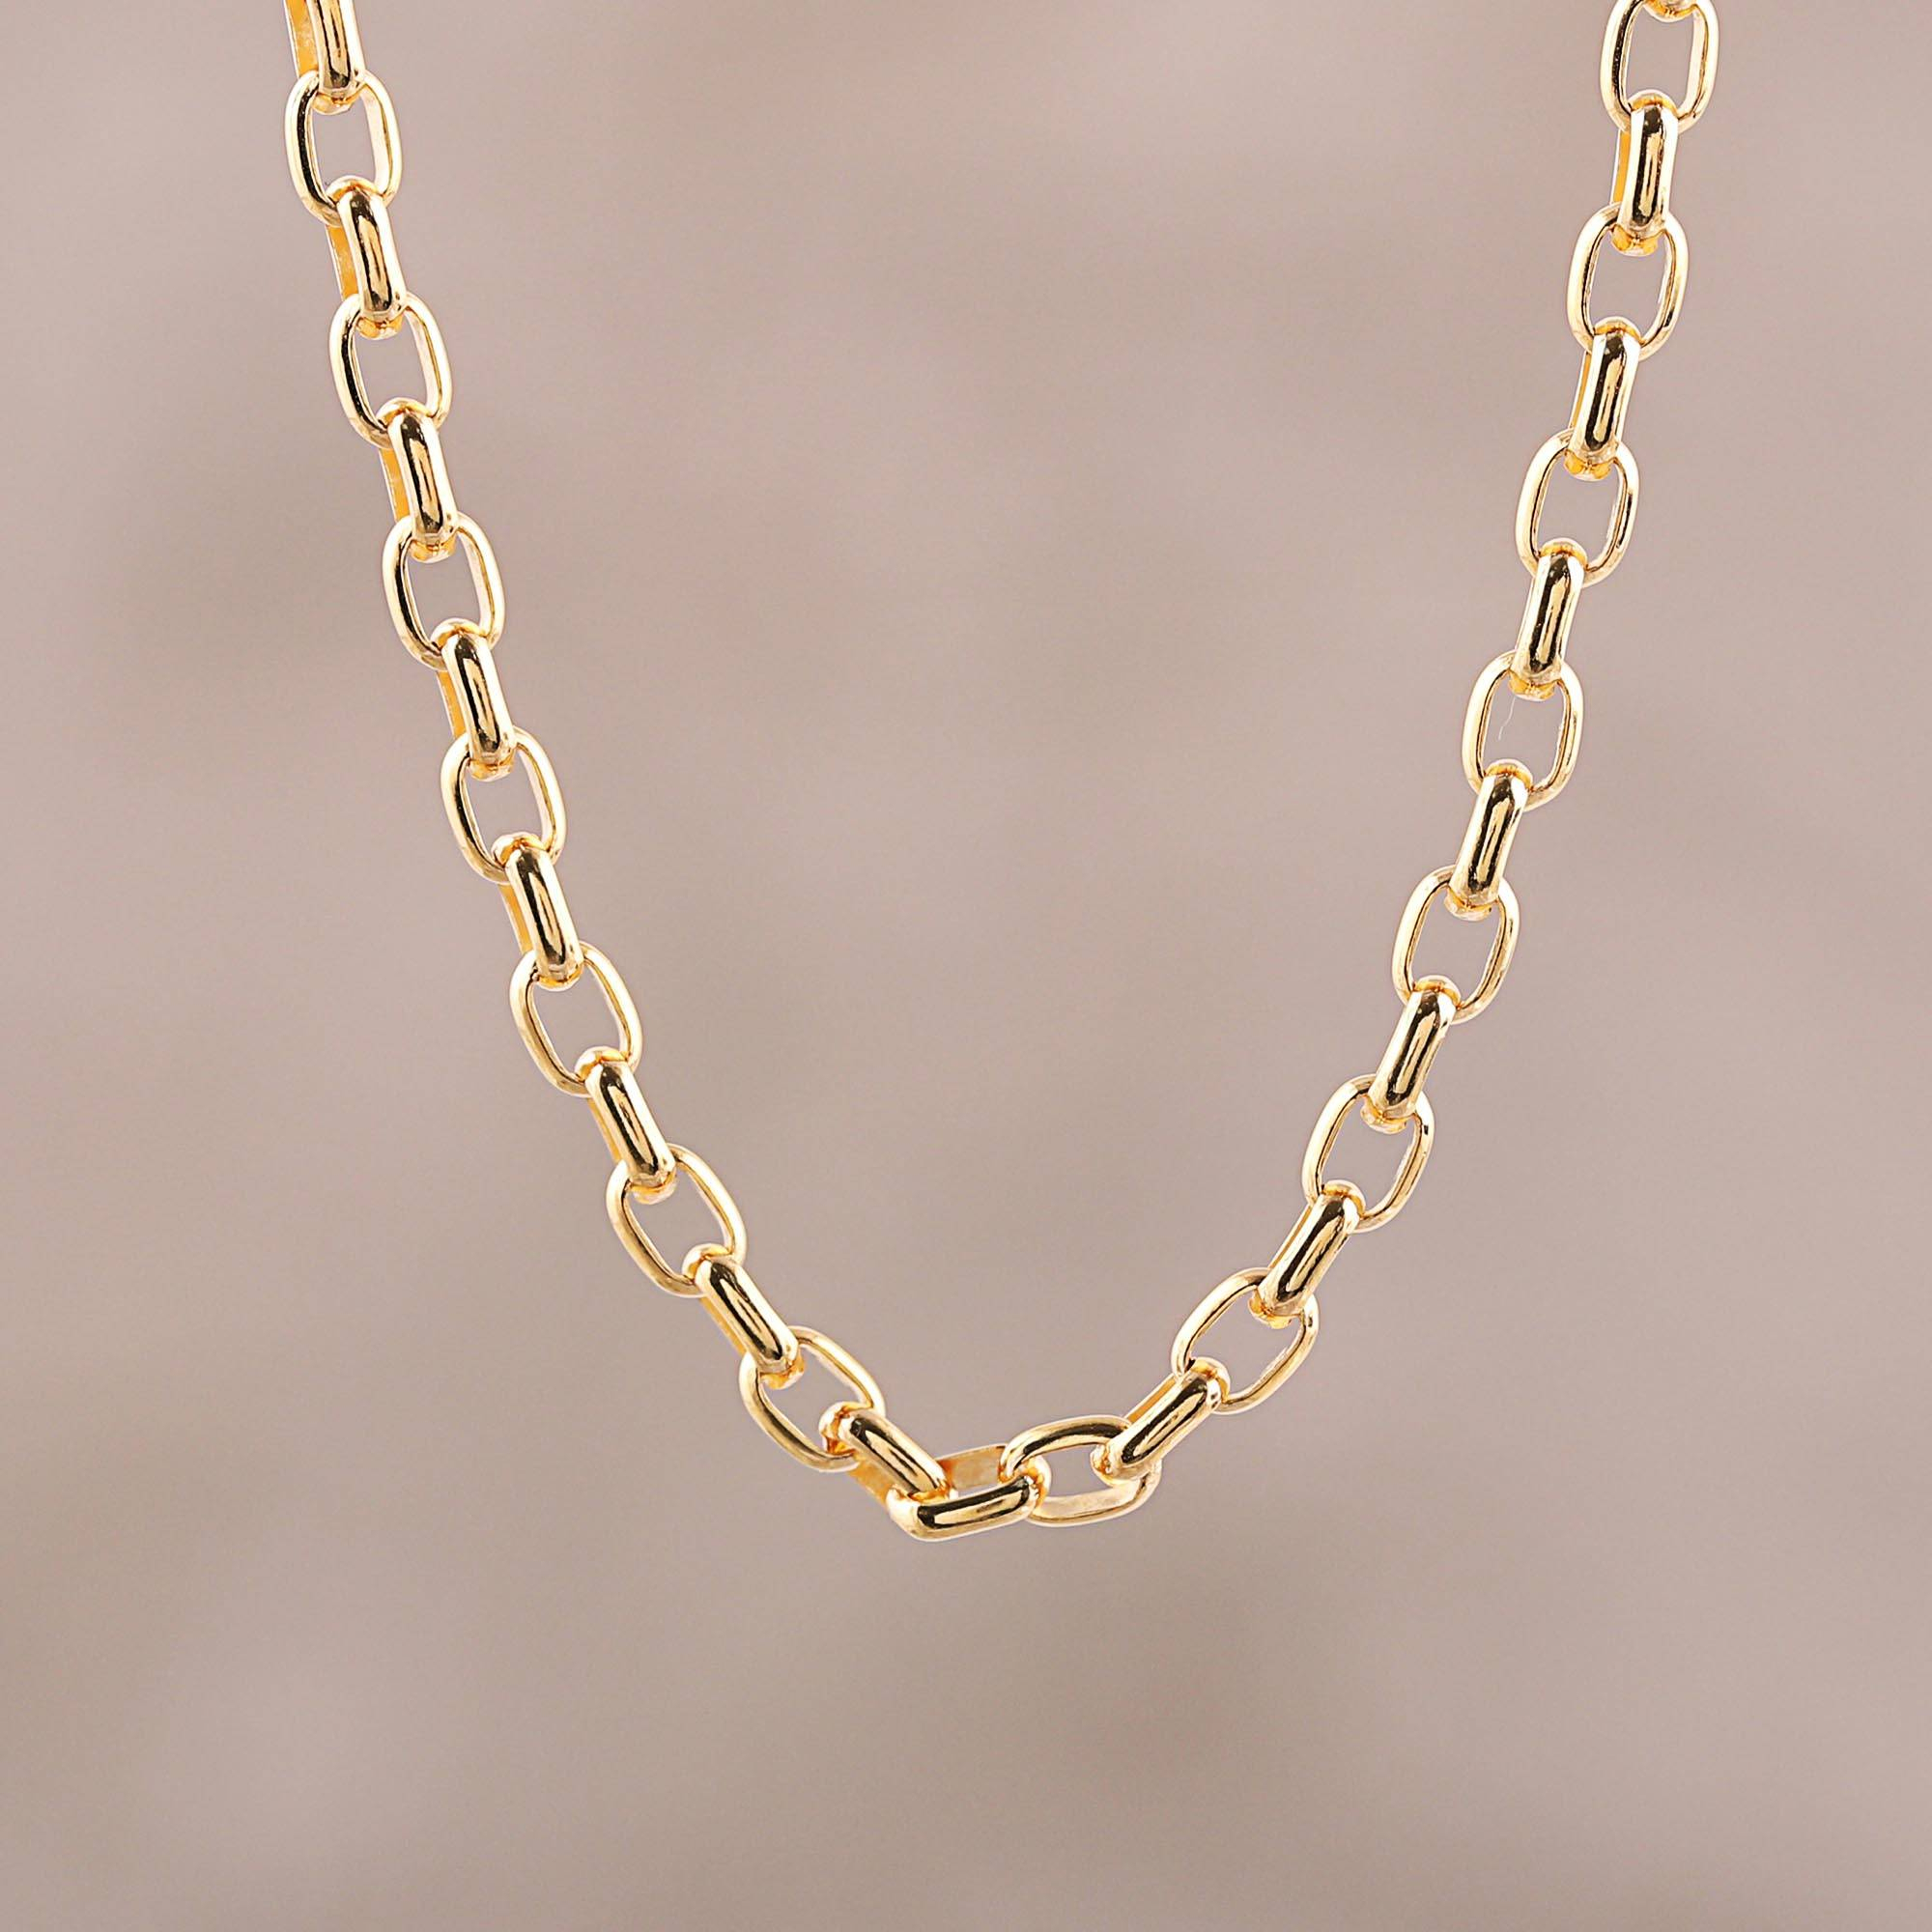 22K Gold Plated Sterling Silver Chain Necklace From India, 'classic Gold' Regarding Most Up To Date Classic Cable Chain Necklaces (Gallery 8 of 25)